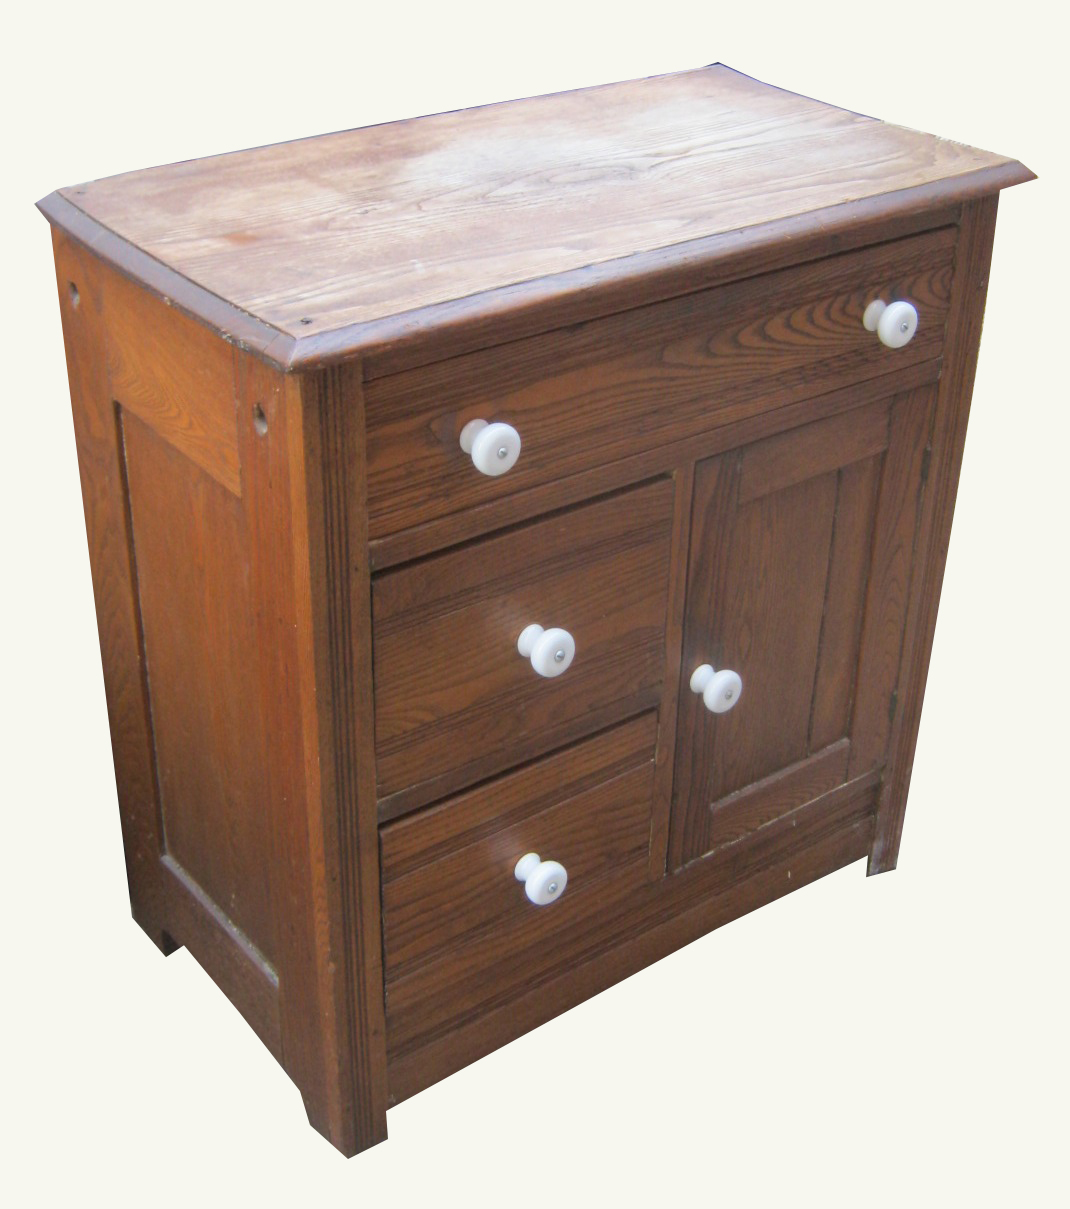 Uhuru Furniture & Collectibles: Early 1900's Wash Stand- SOLD